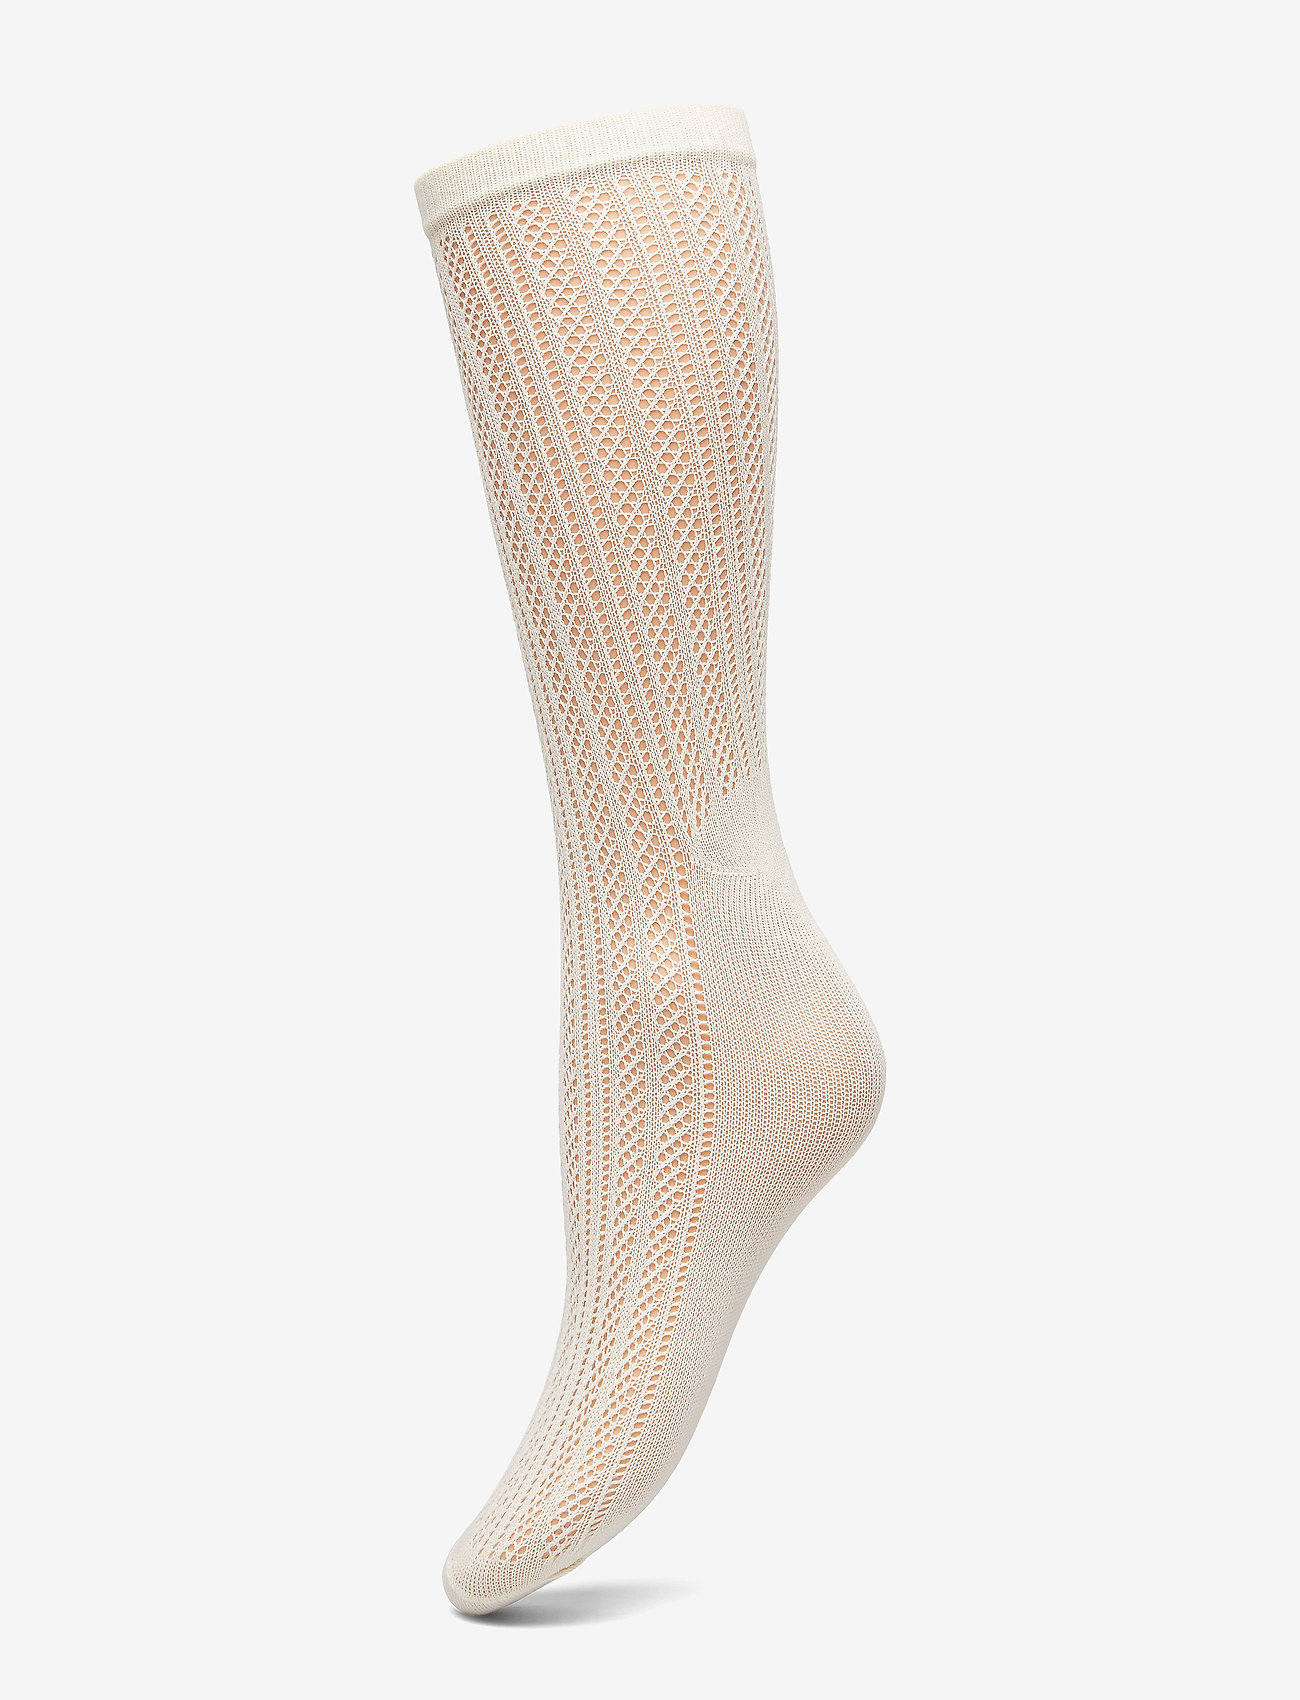 Swedish Stockings - Klara knit sock - socken - ivory - 0